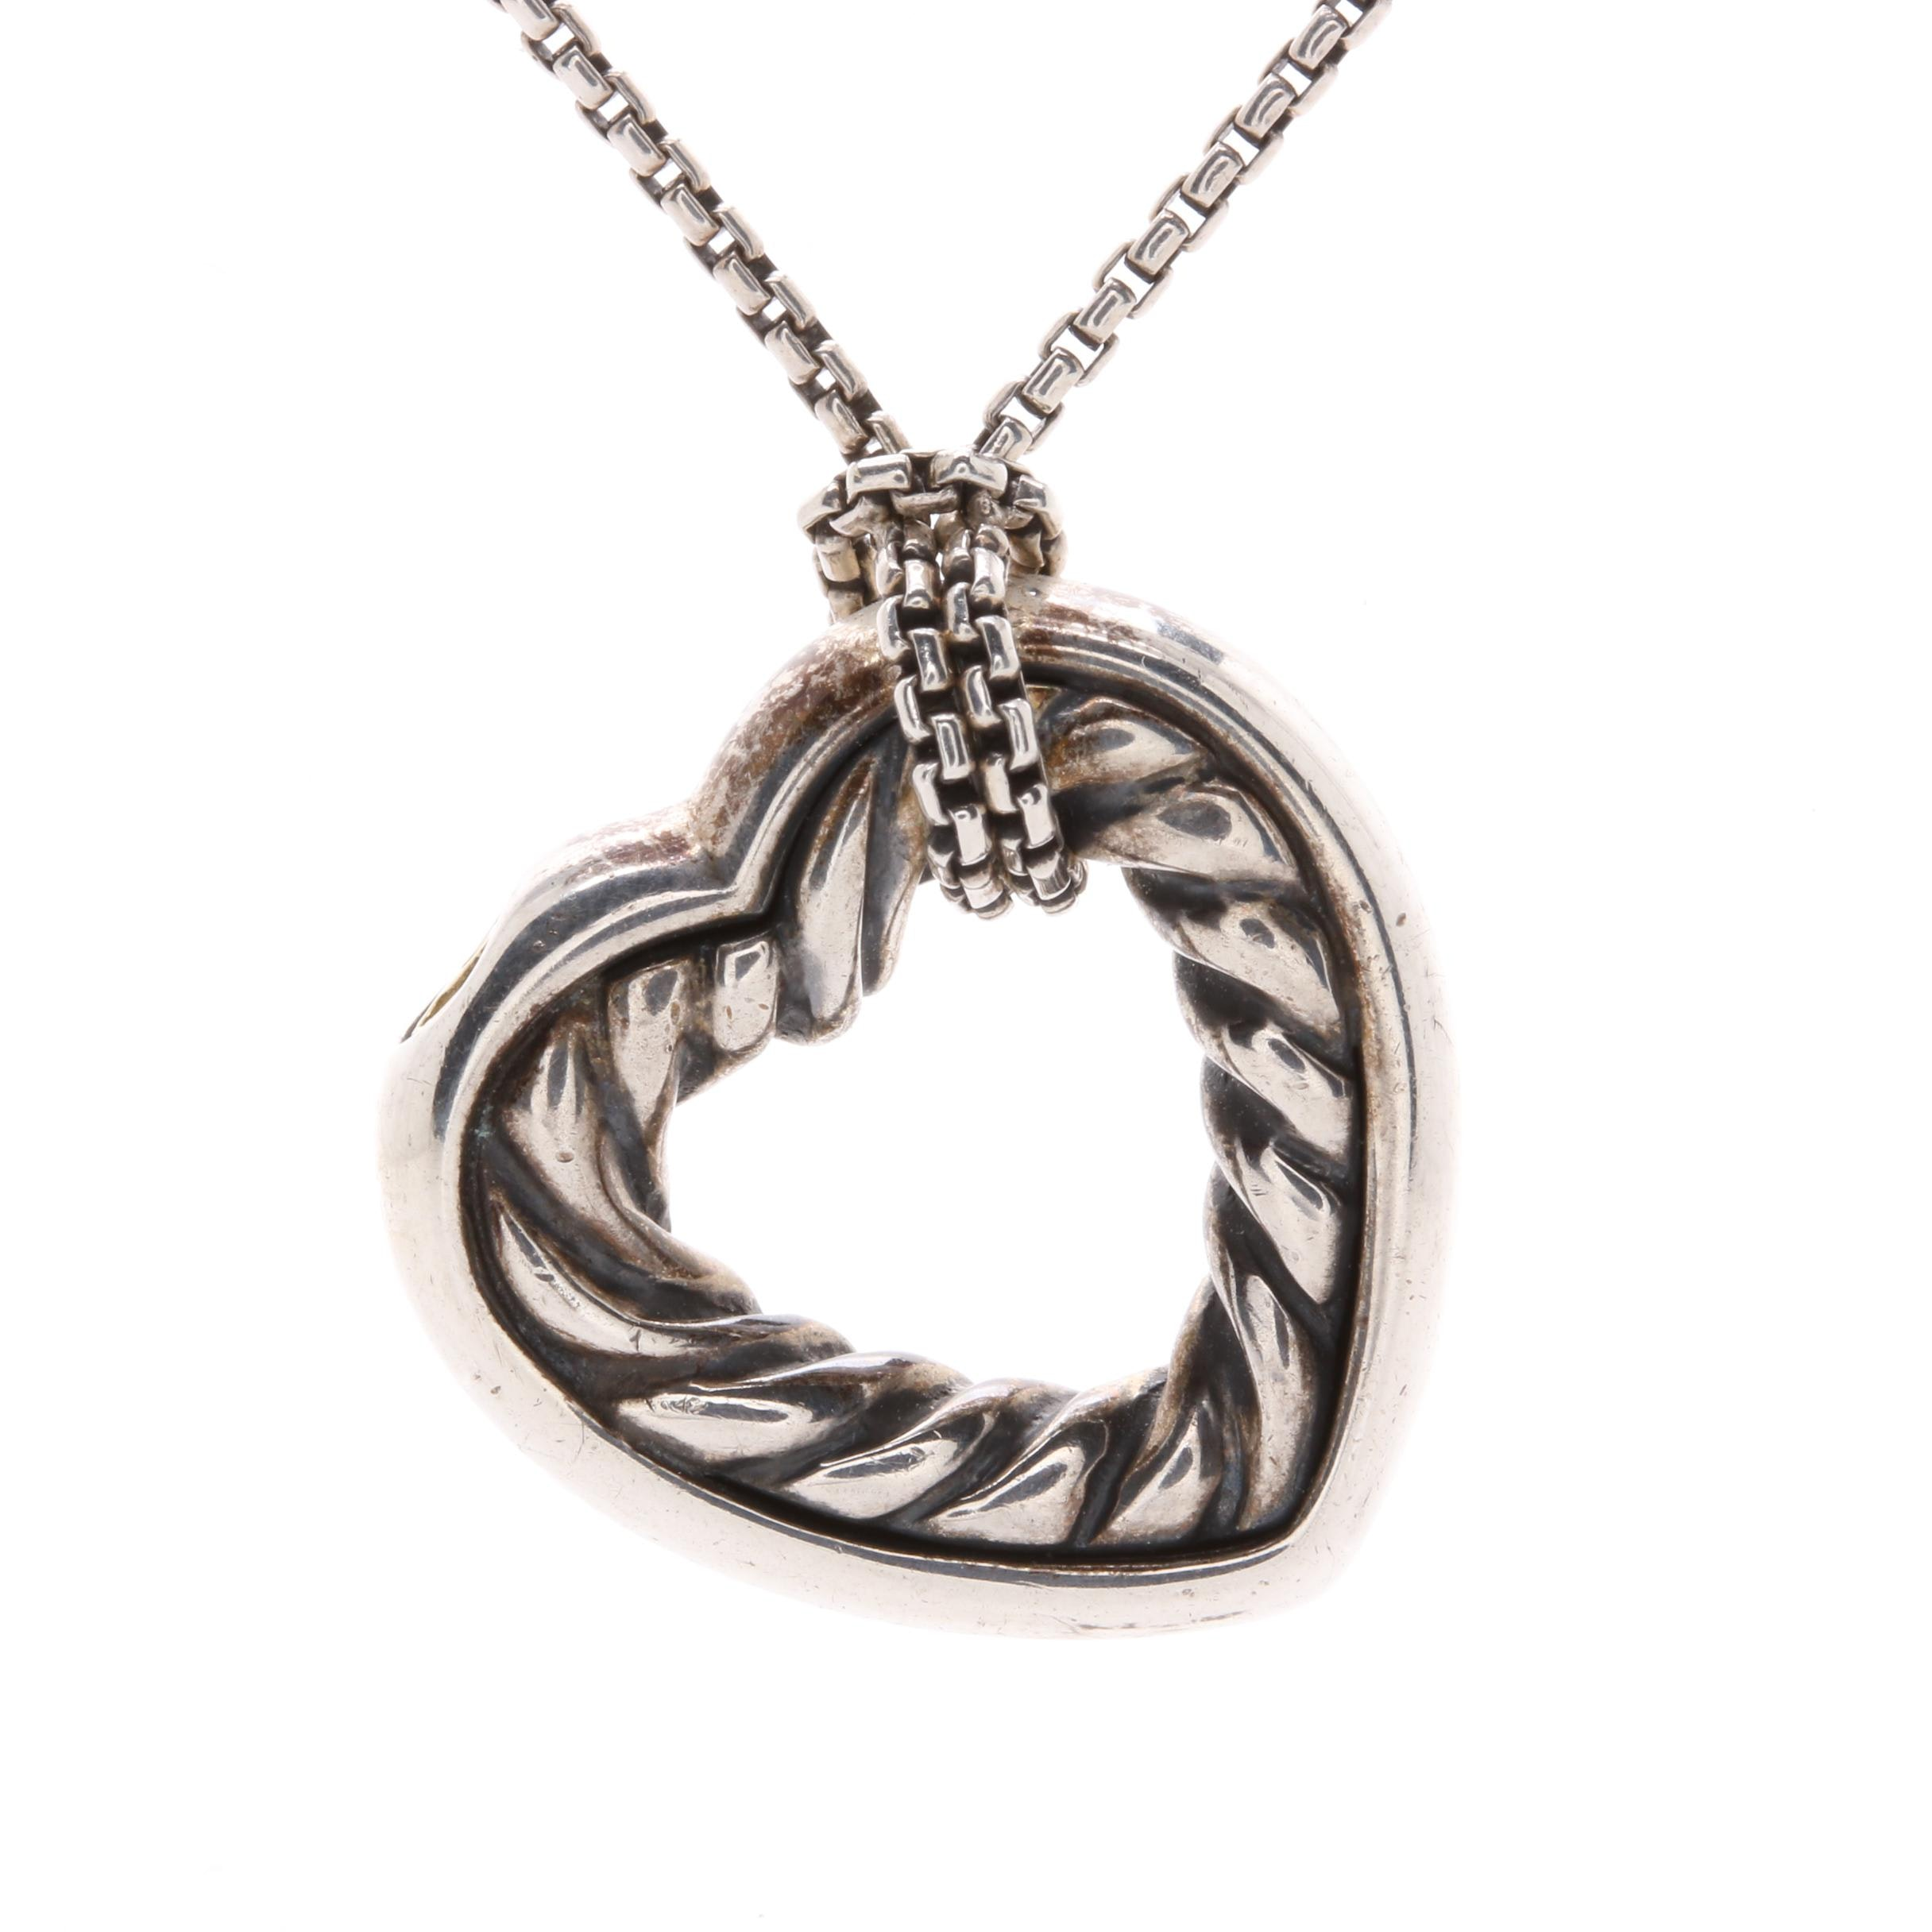 David Yurman Sterling Silver with 18K Yellow Gold Accented Heart Necklace